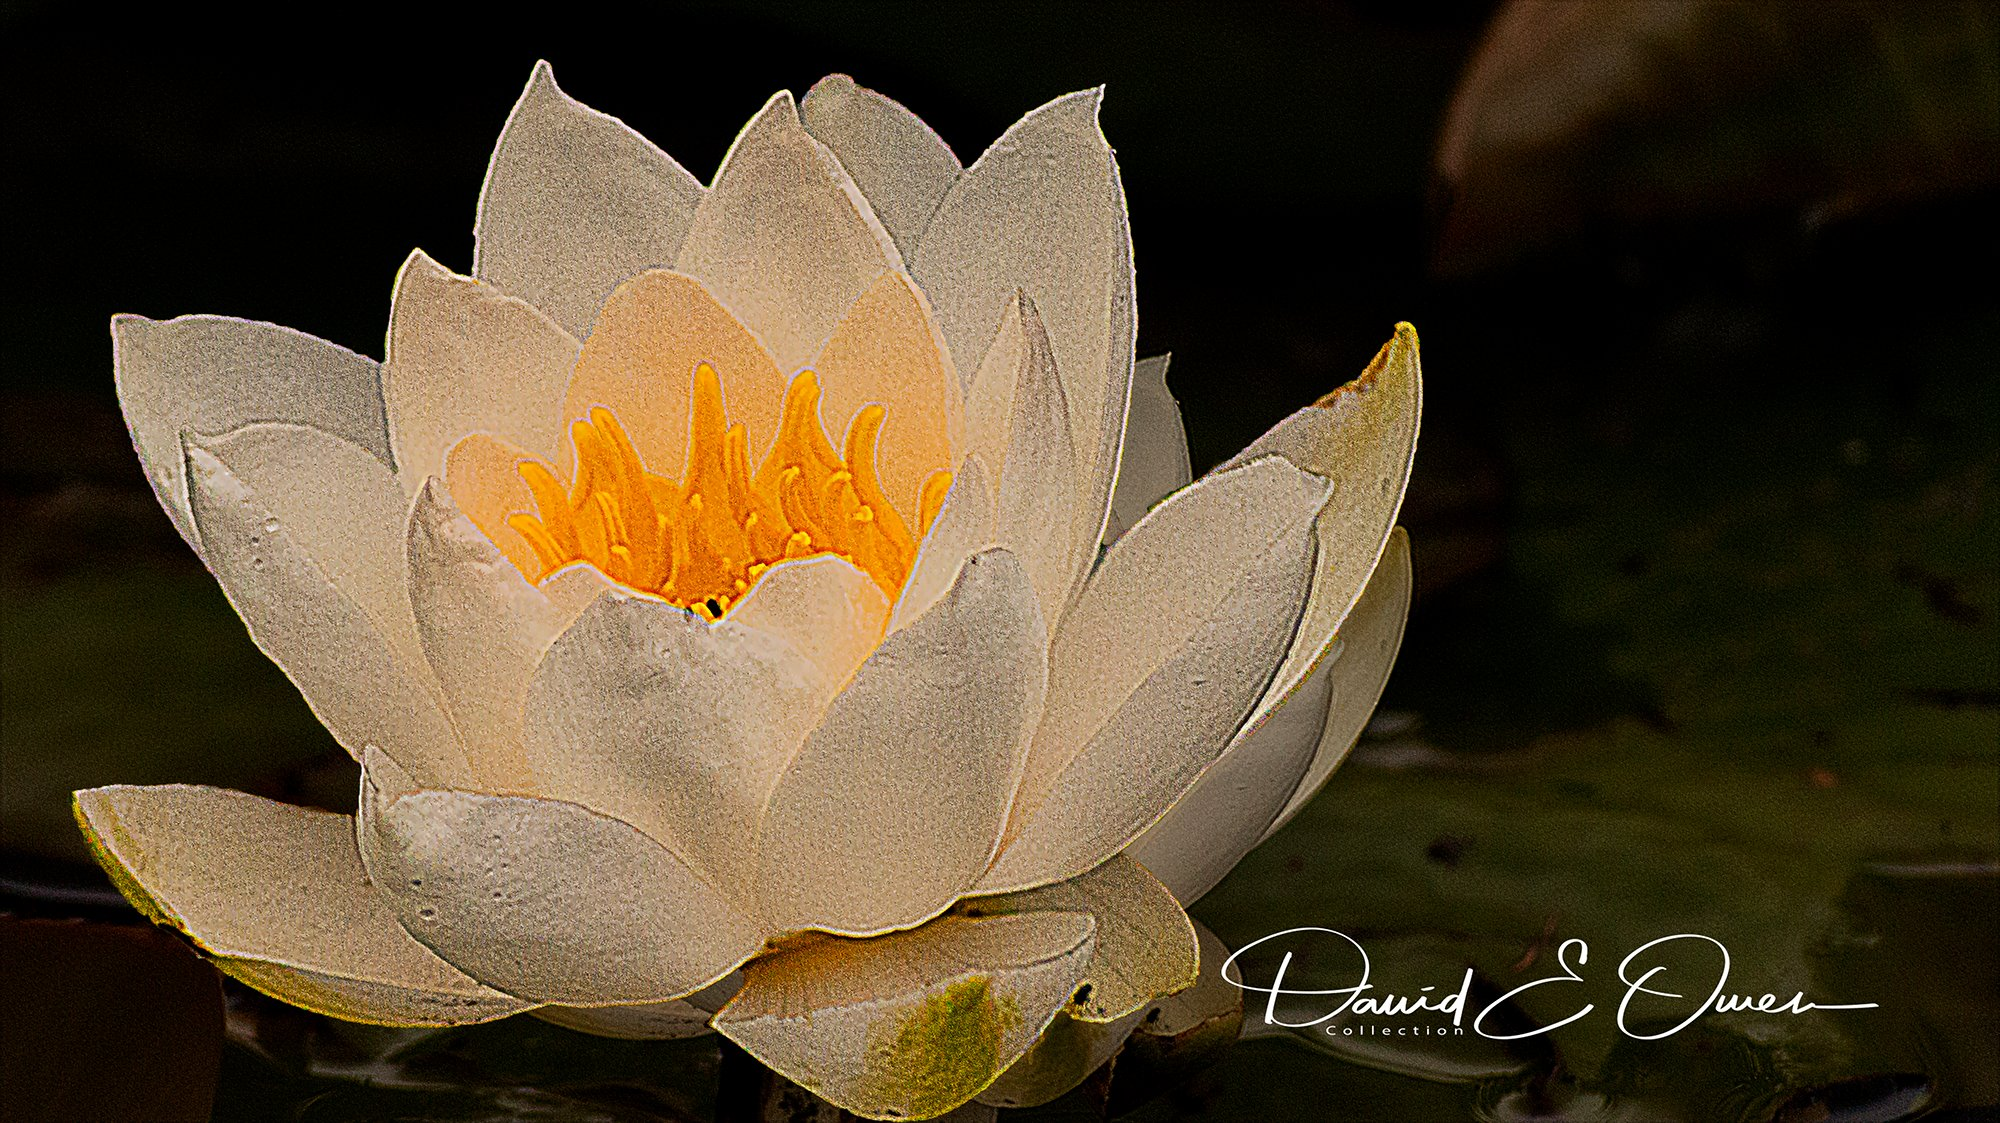 Water Lily|: Ref B026